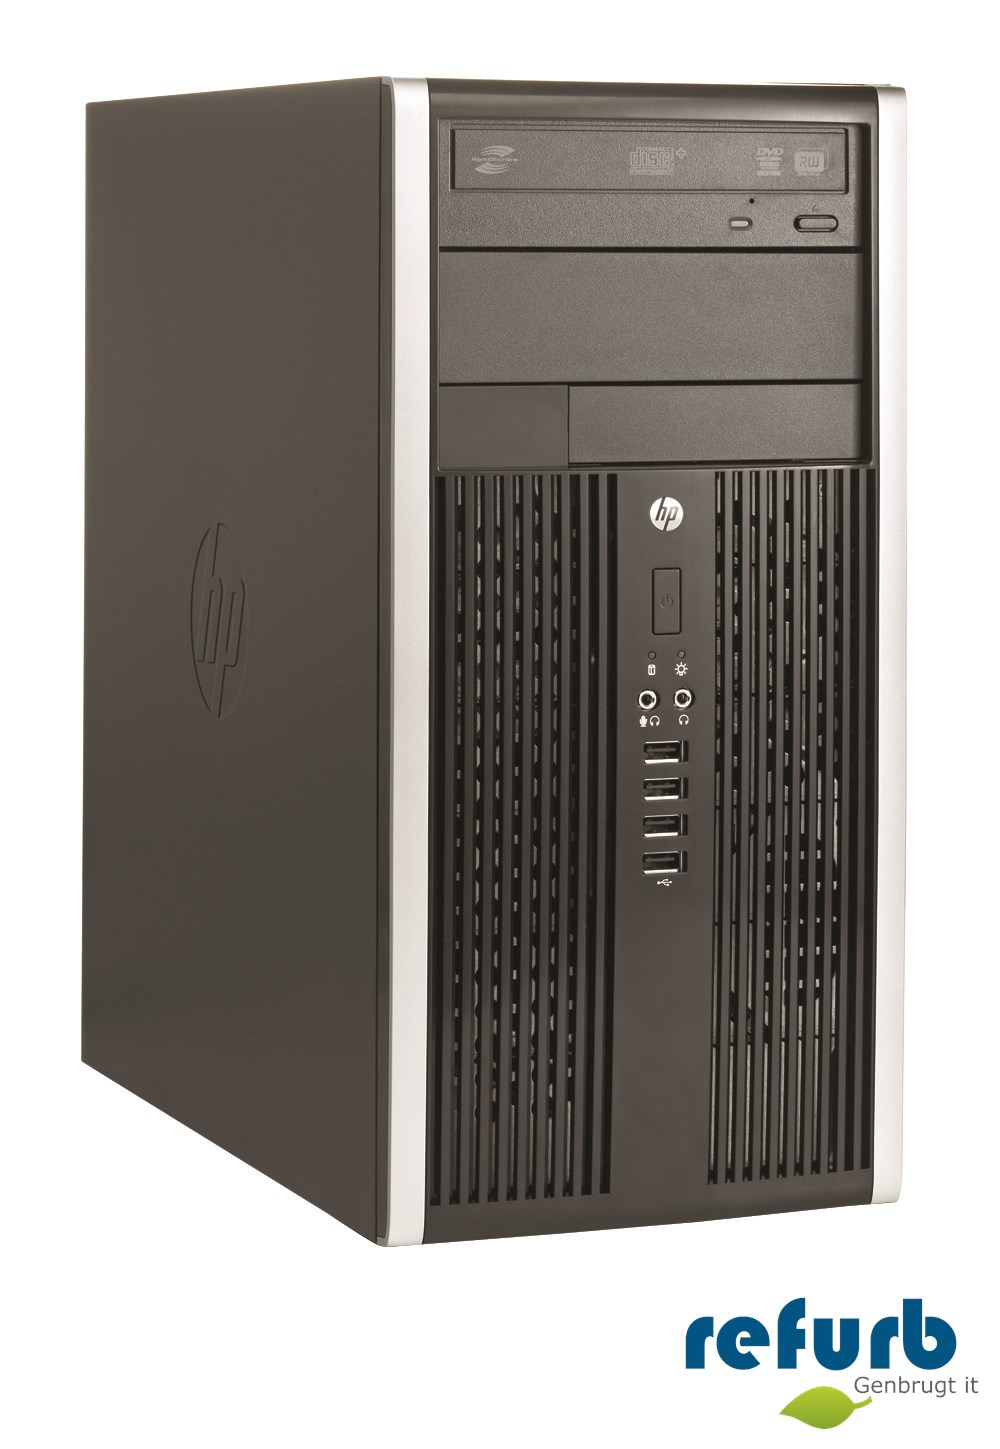 Hp compaq 8200 elite mt fra Hp på refurb